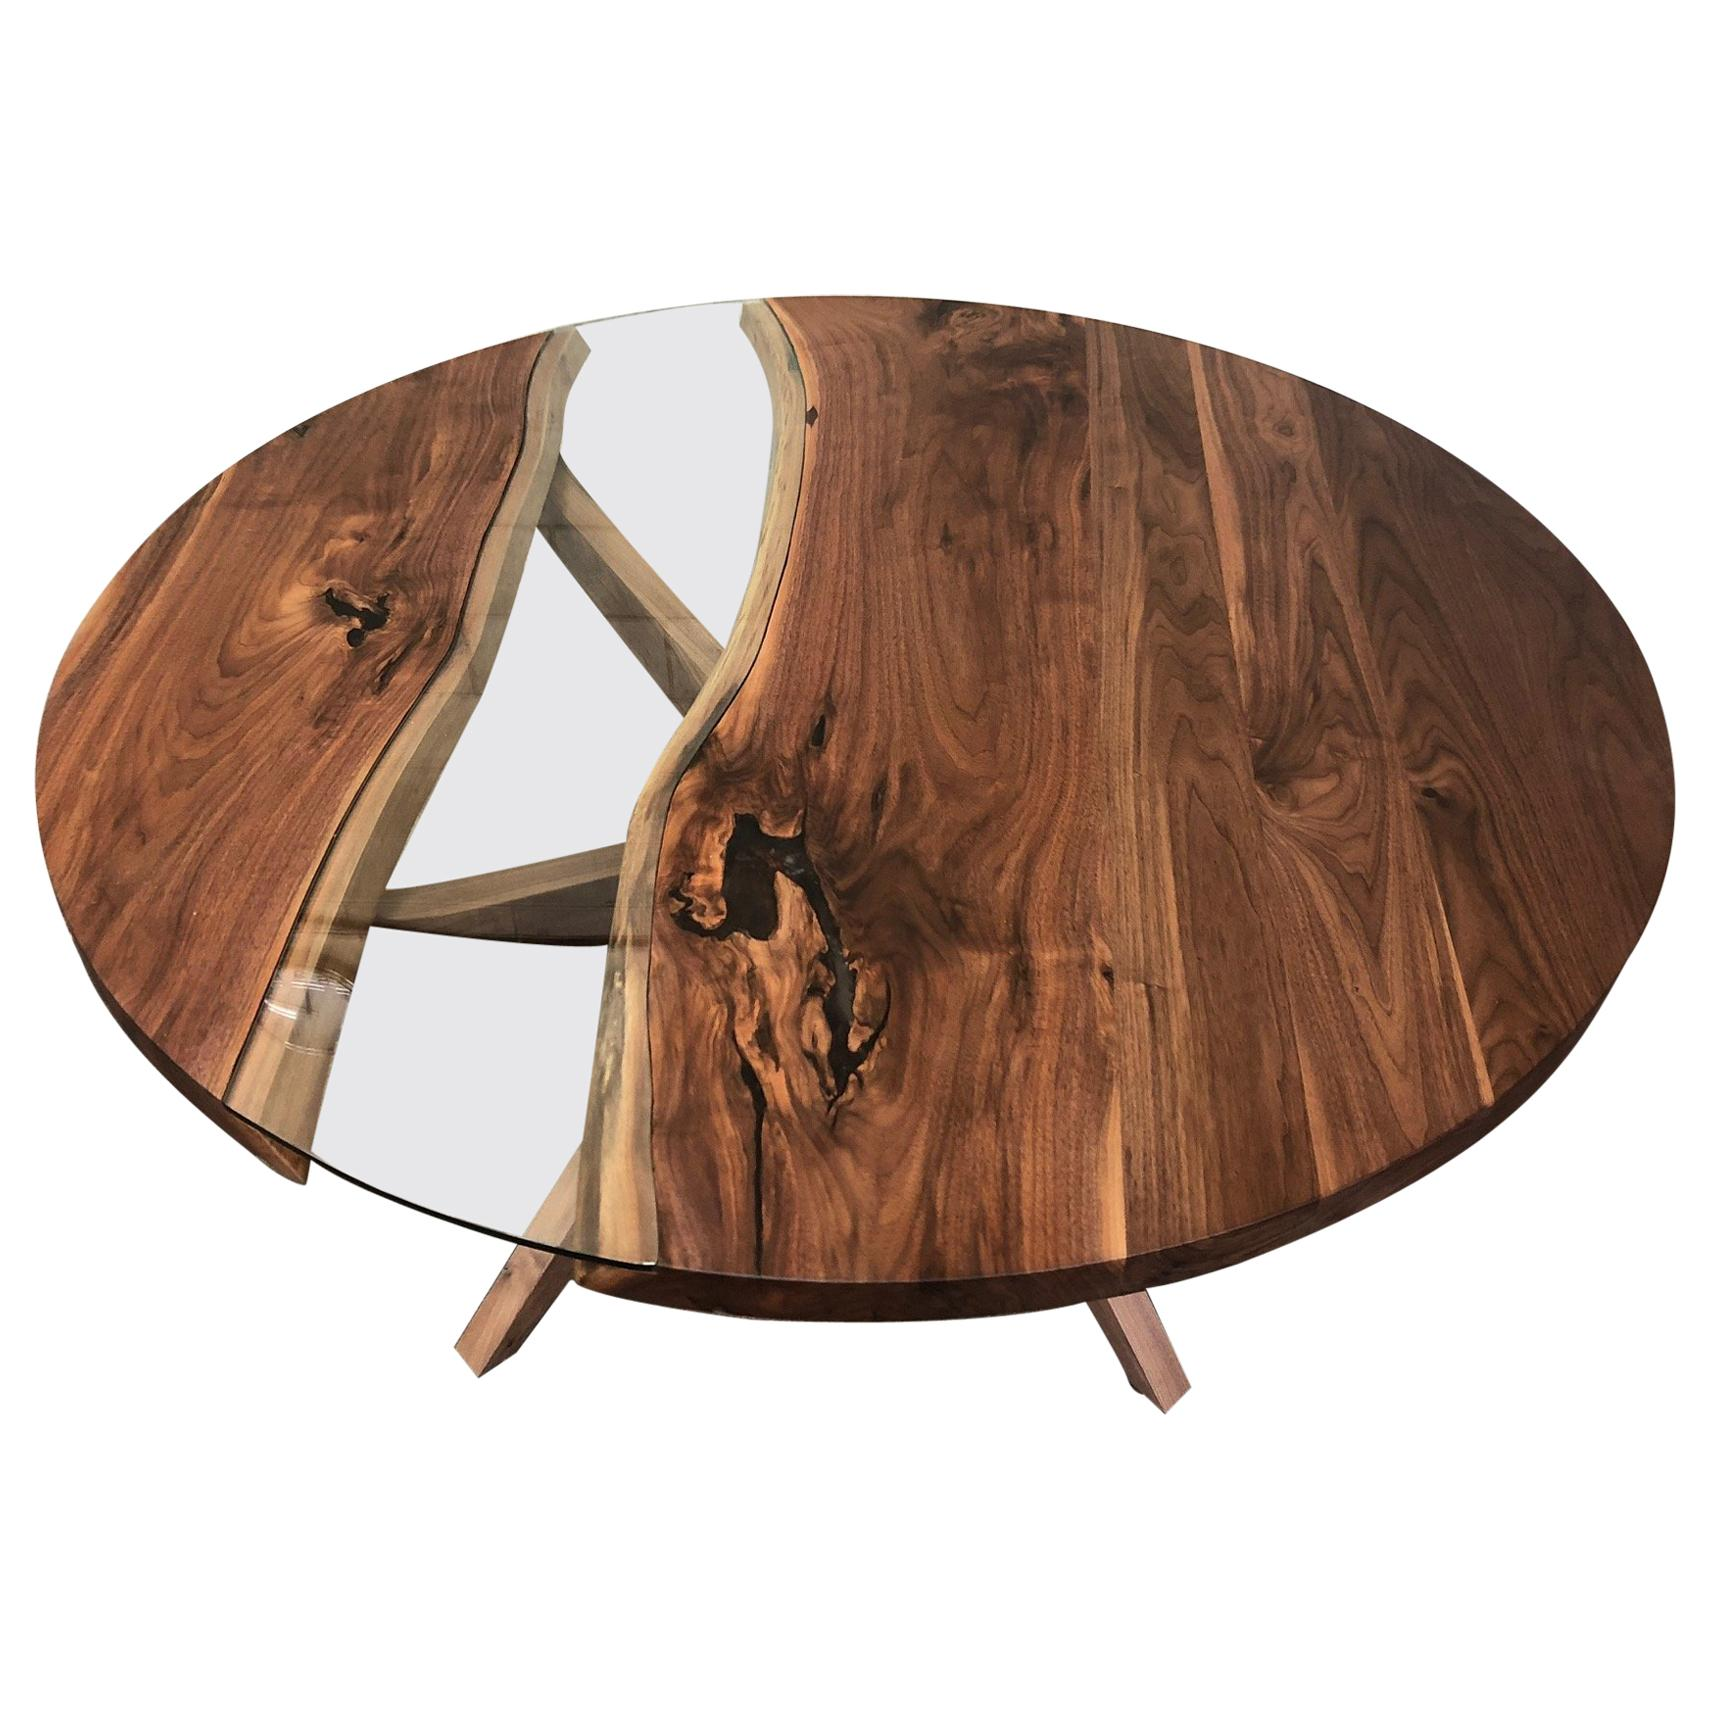 Round Dining Table in Black Walnut